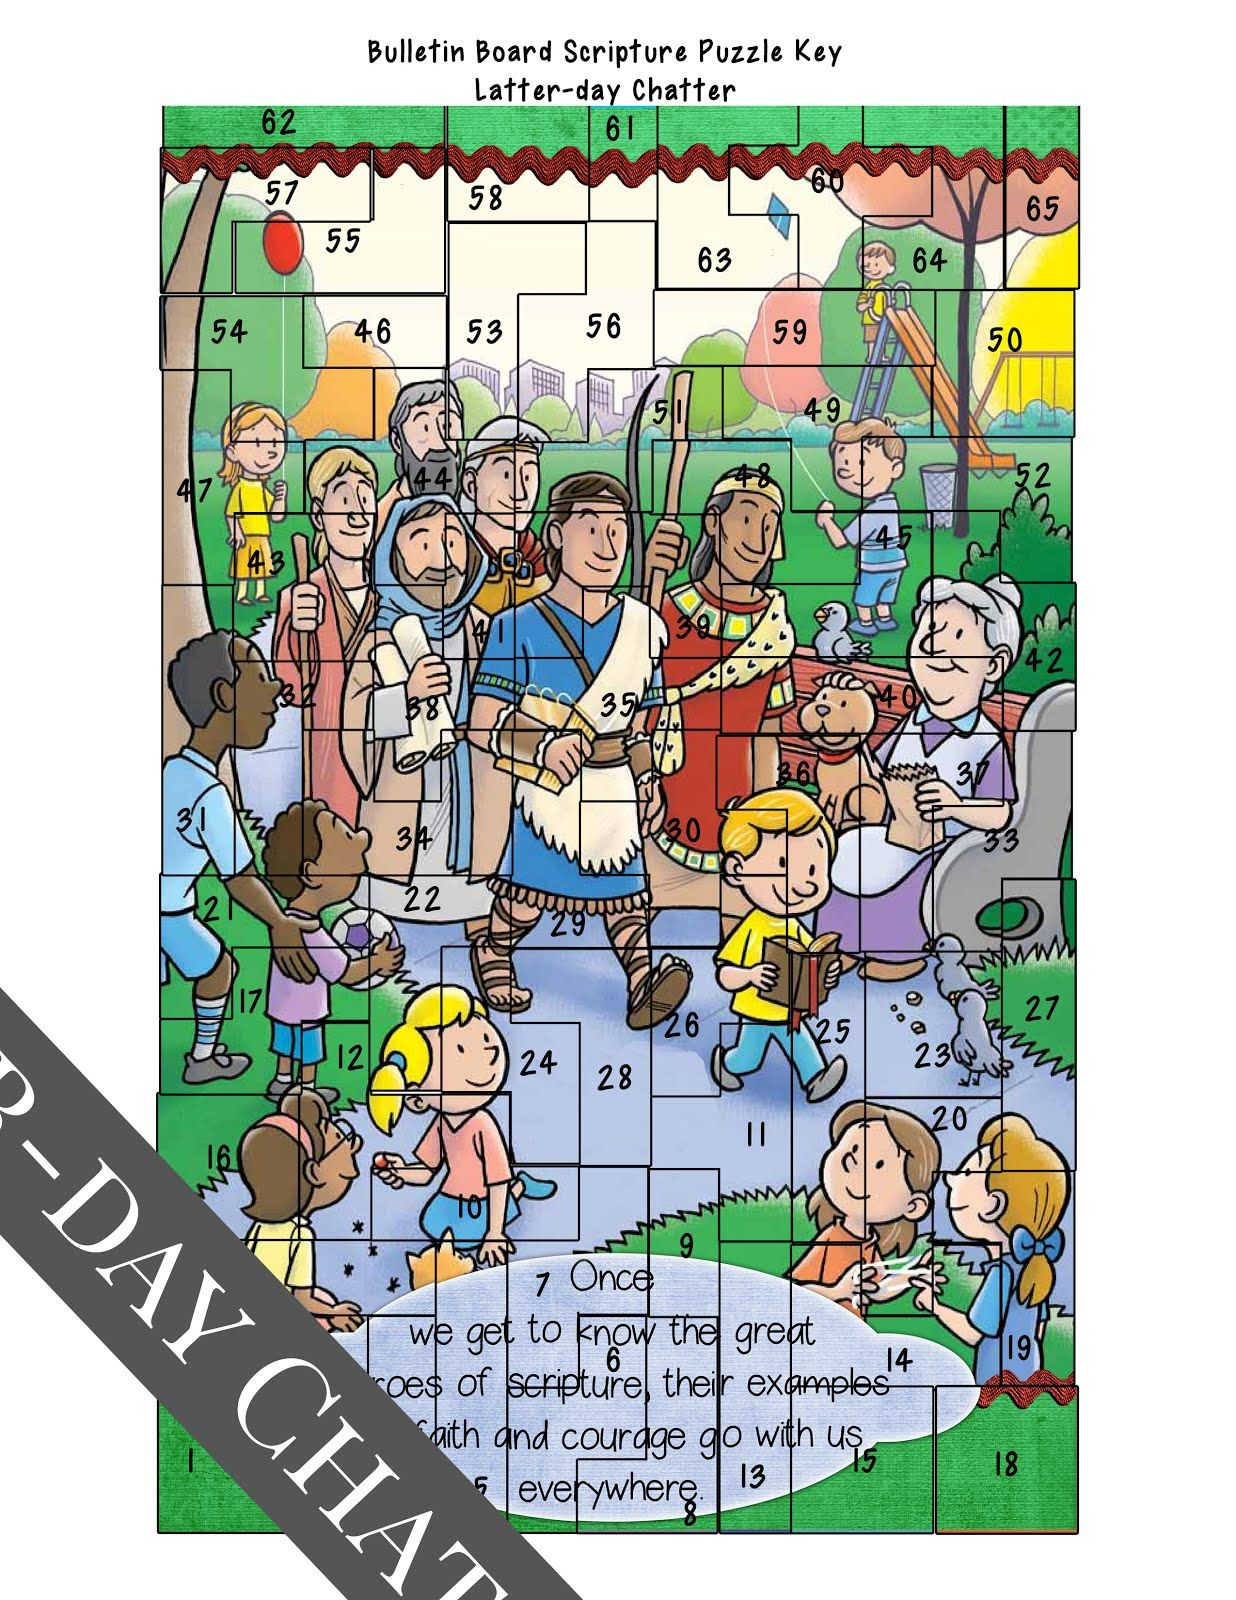 Latter Day Chatter Bulletin Board Scripture Puzzle